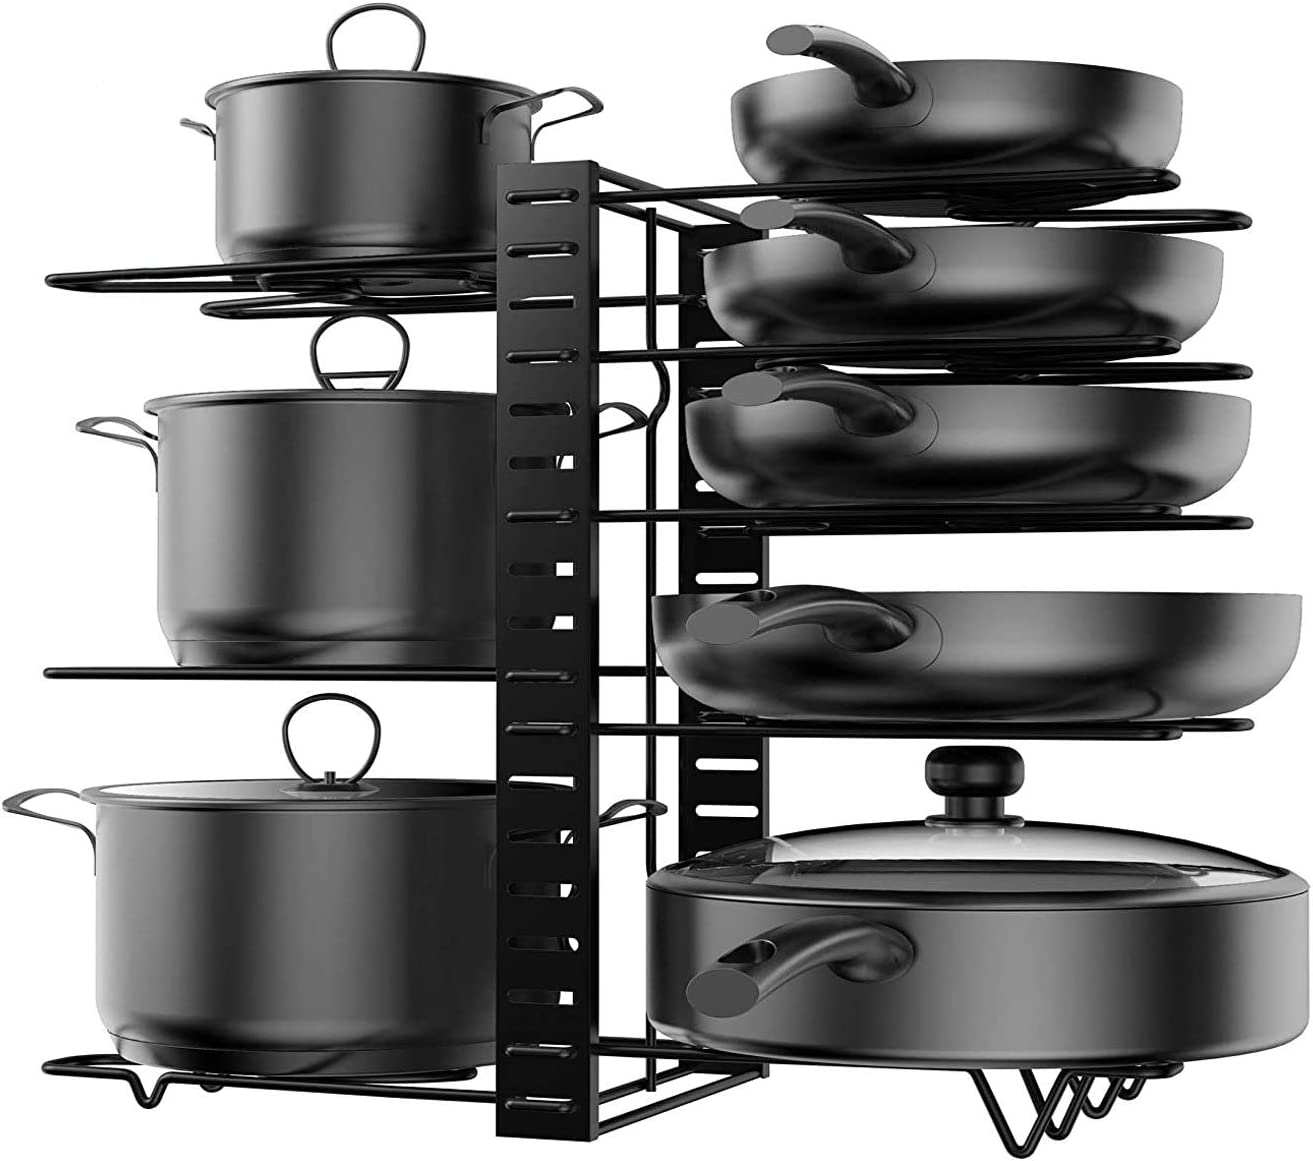 KLEVERISE Excellence 8 Tiers Pot Pan Storage Spring new work Organizers Rack D – Heavy